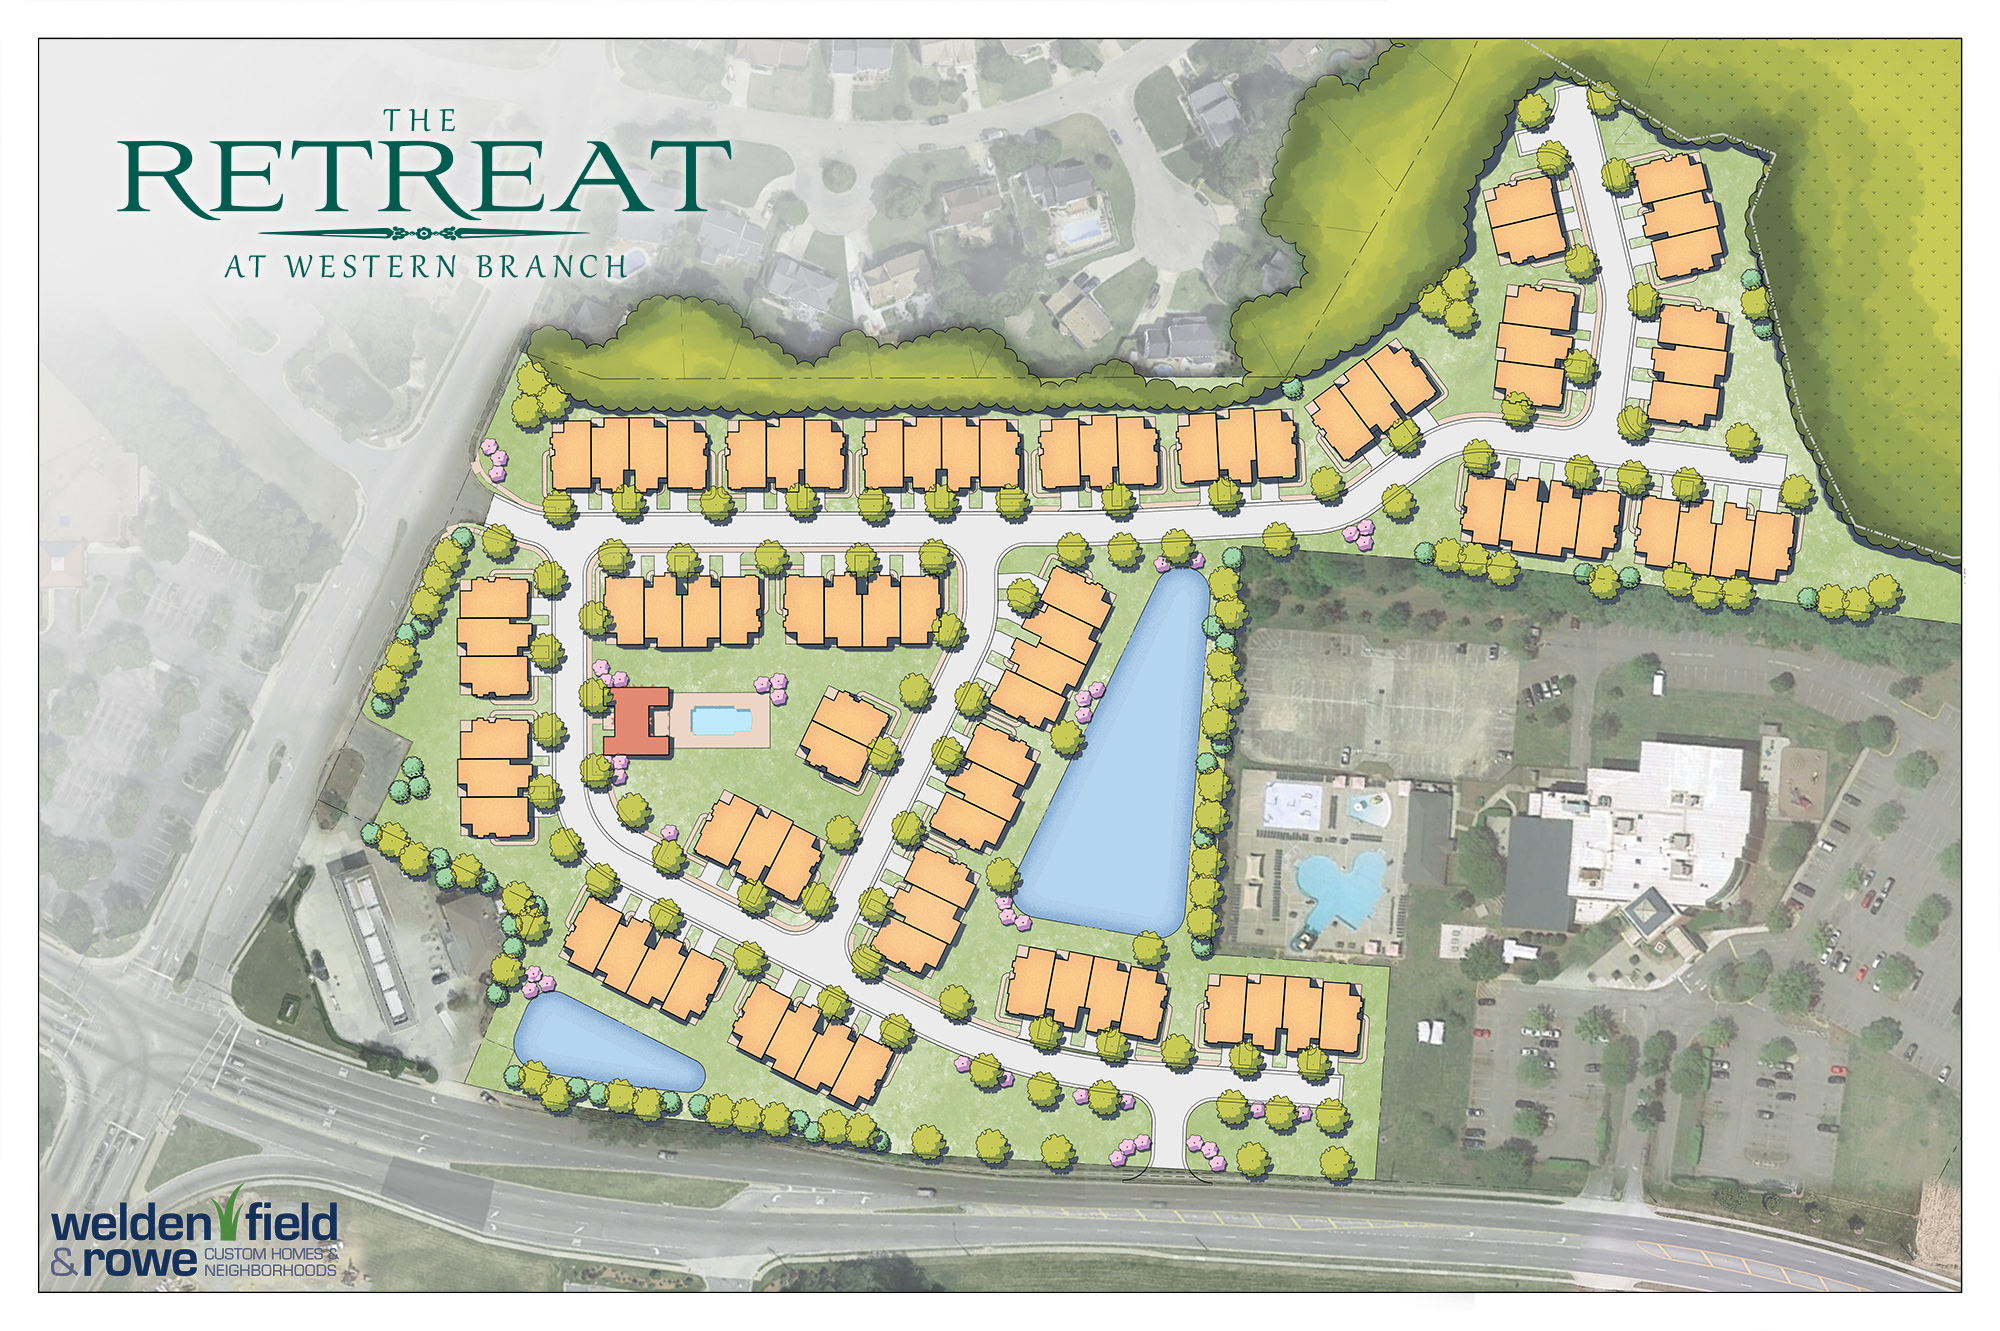 The Retreat at Western Branch Site plan